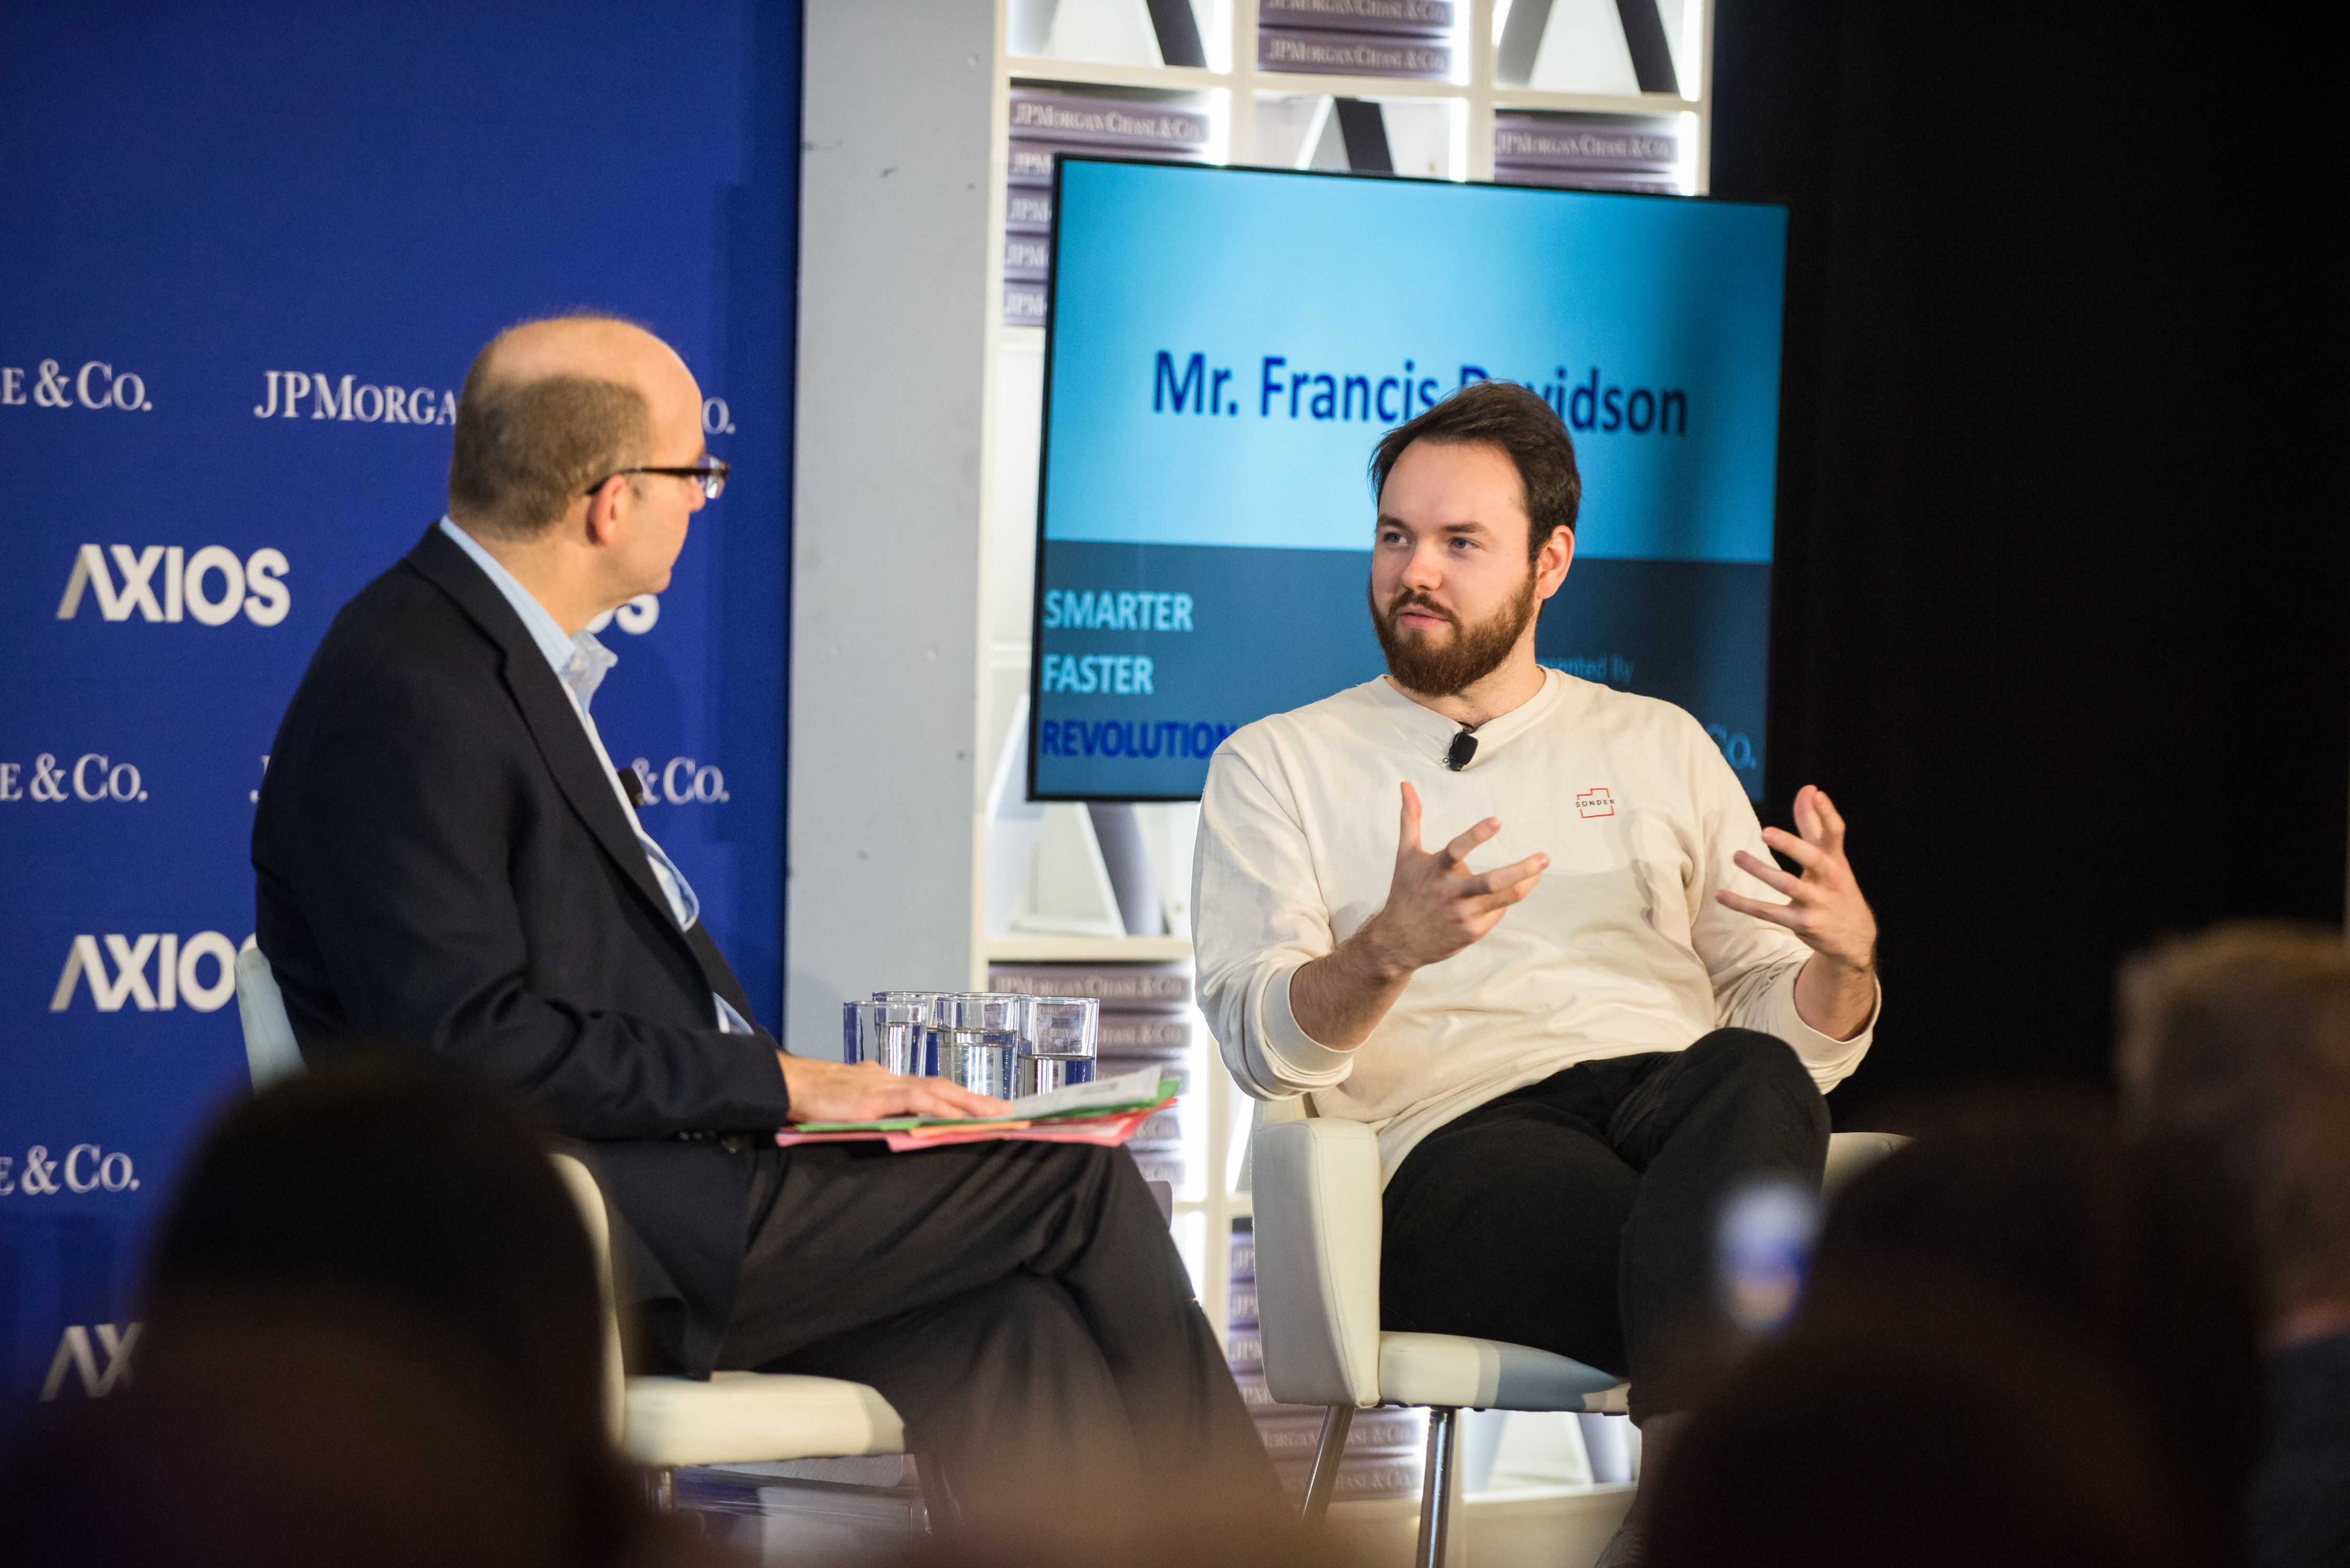 Mike Allen and Founder of Sonder Francis Davidson in conversation on the Axios stage.